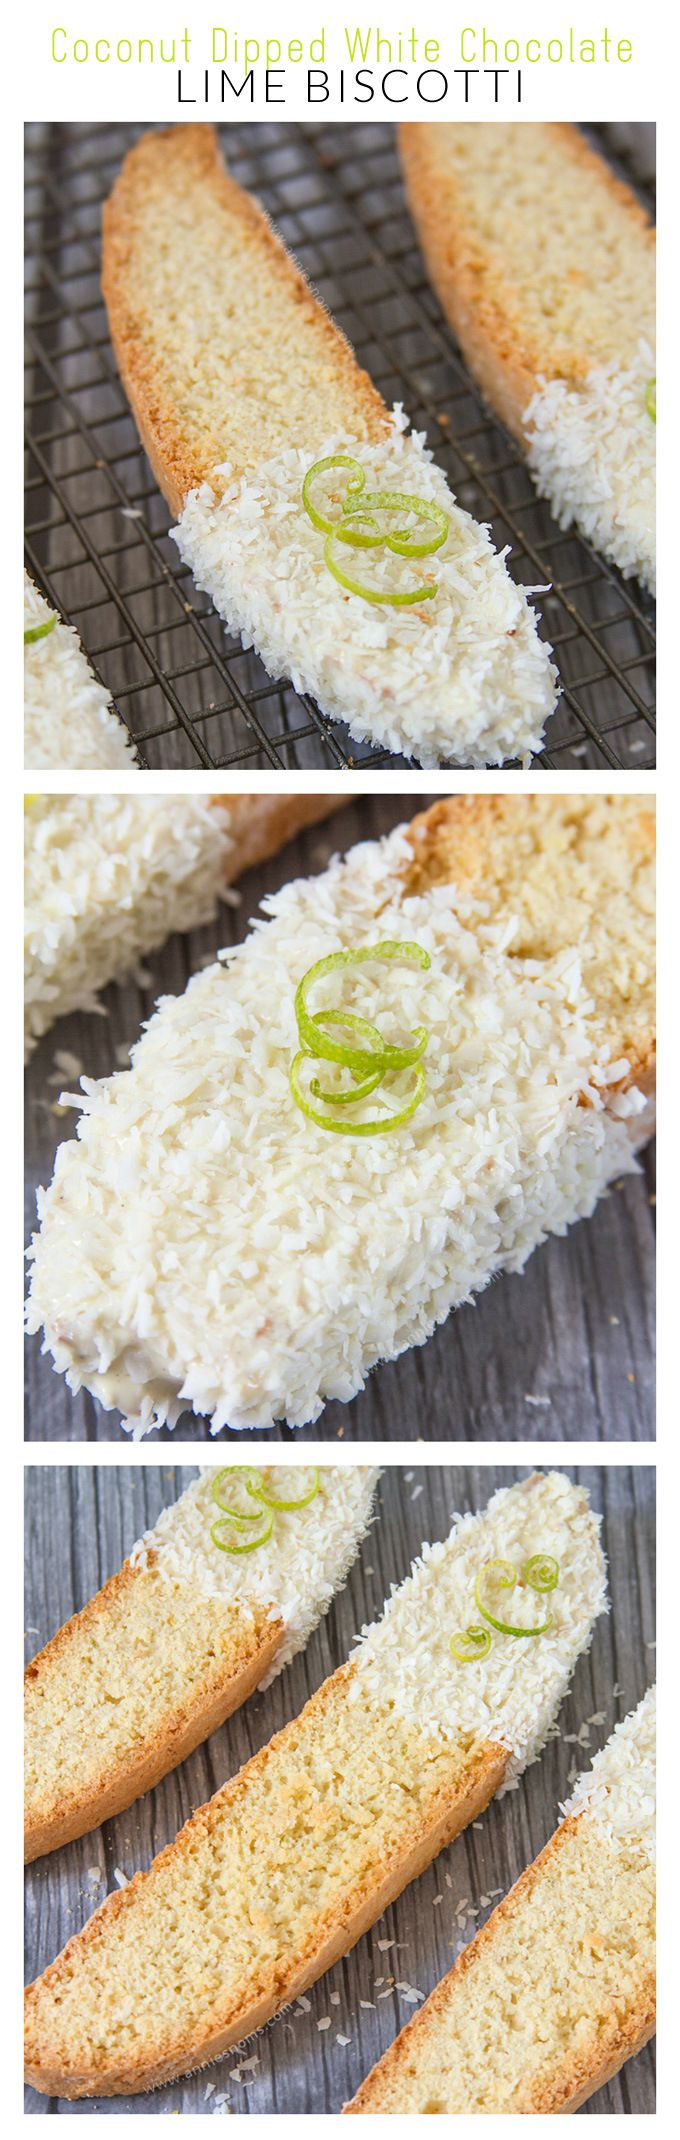 Lime Biscotti has flakes of coconut inside it and is then dipped in melted white chocolate before being covered in more coconut flakes.